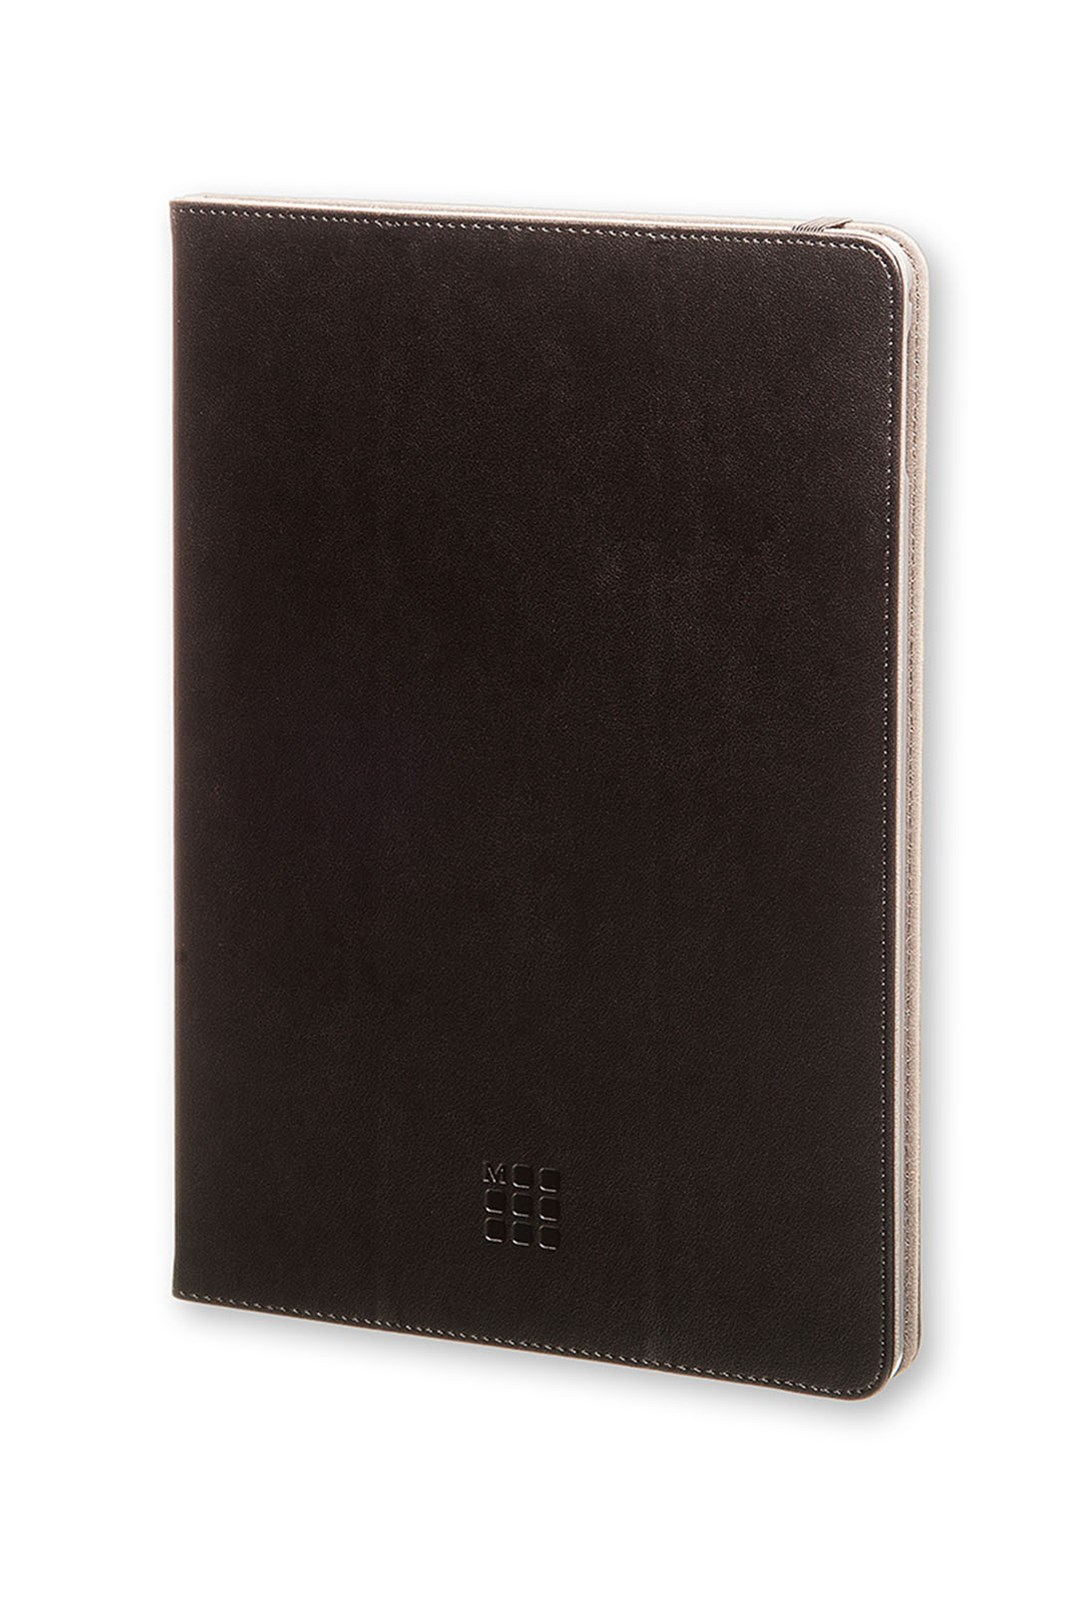 Moleskine - Classic iPad Case - Suits Air 2 - Black